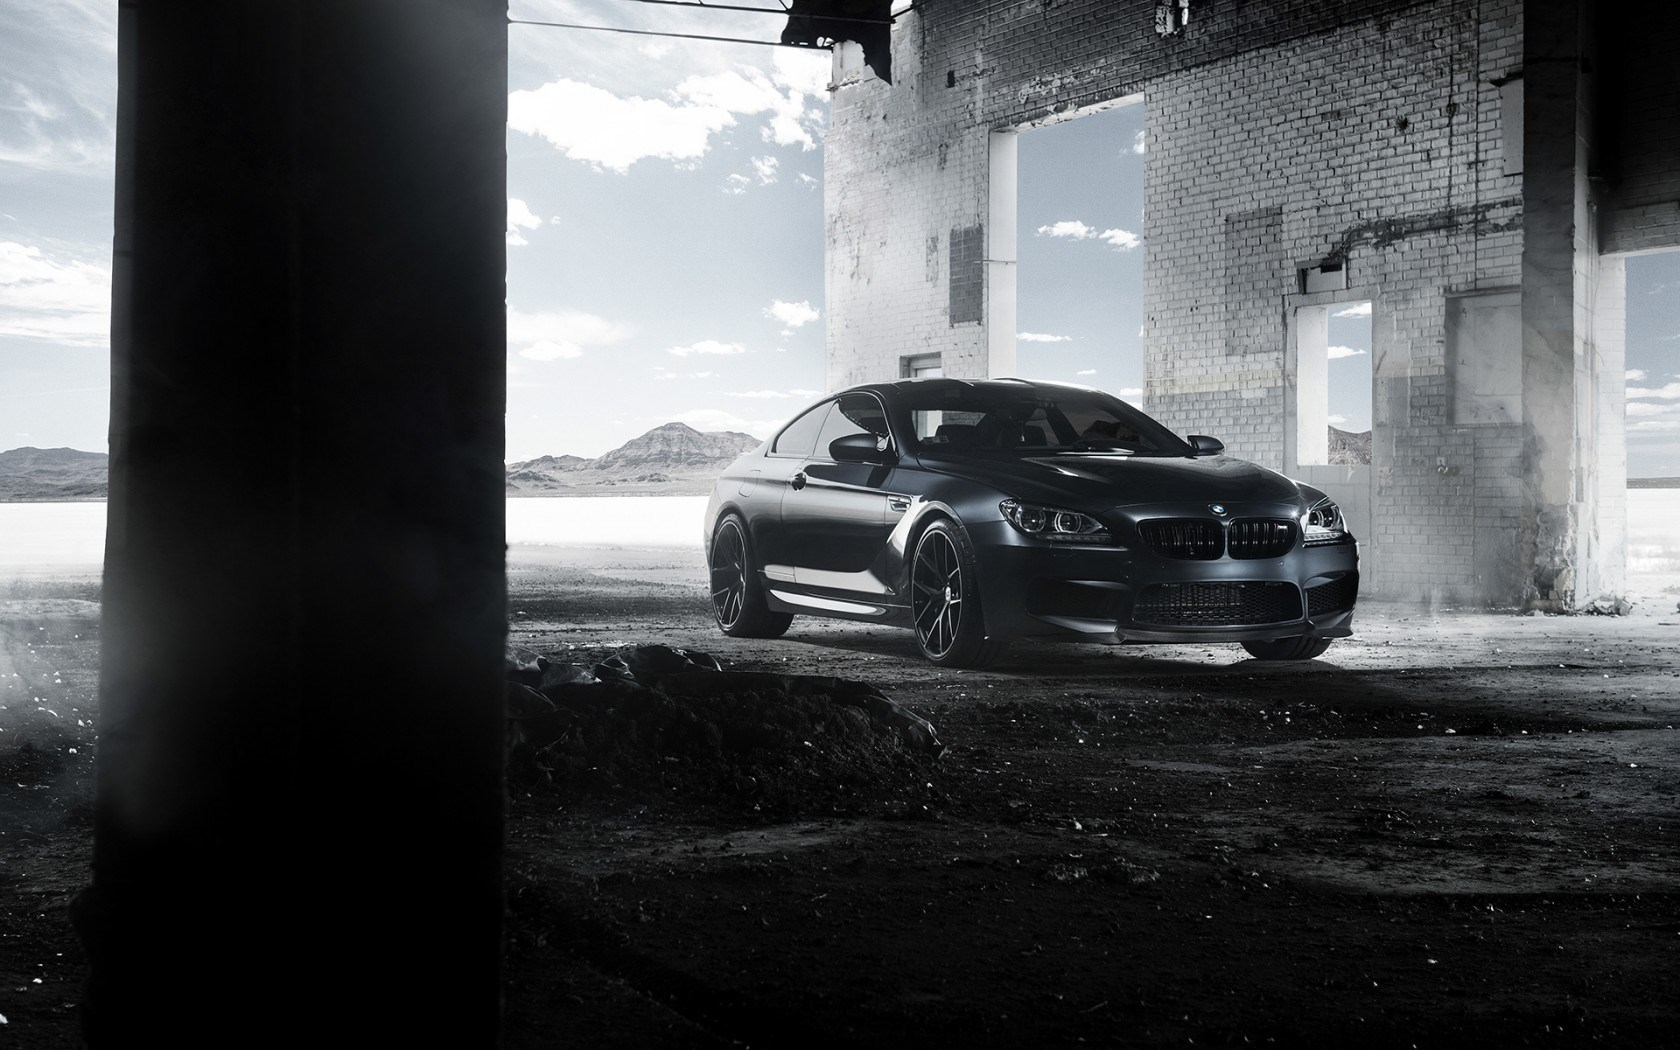 Bmw M6 Coupe F13 Black Car Tuning Bmw M6 All Black 1757345 Hd Wallpaper Backgrounds Download